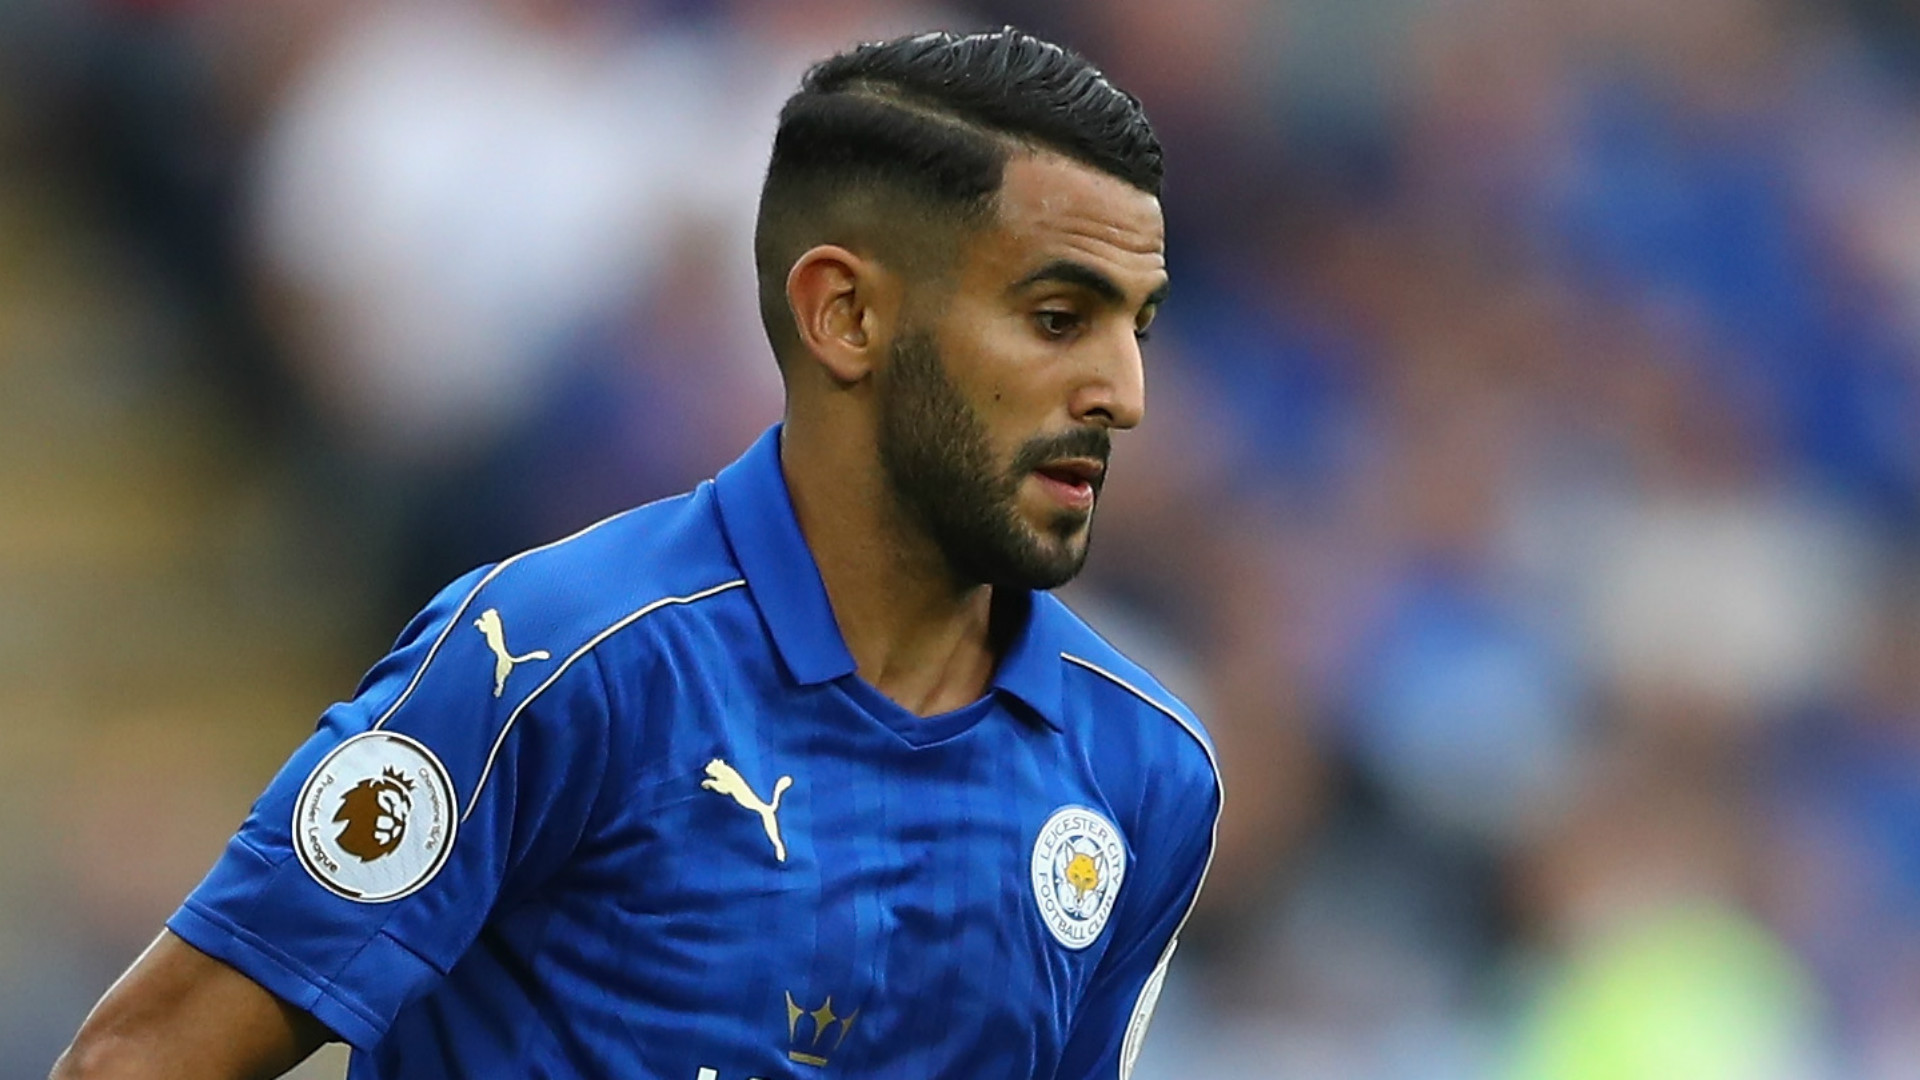 Roma target Riyad Mahrez is good enough for Arsenal, say readers